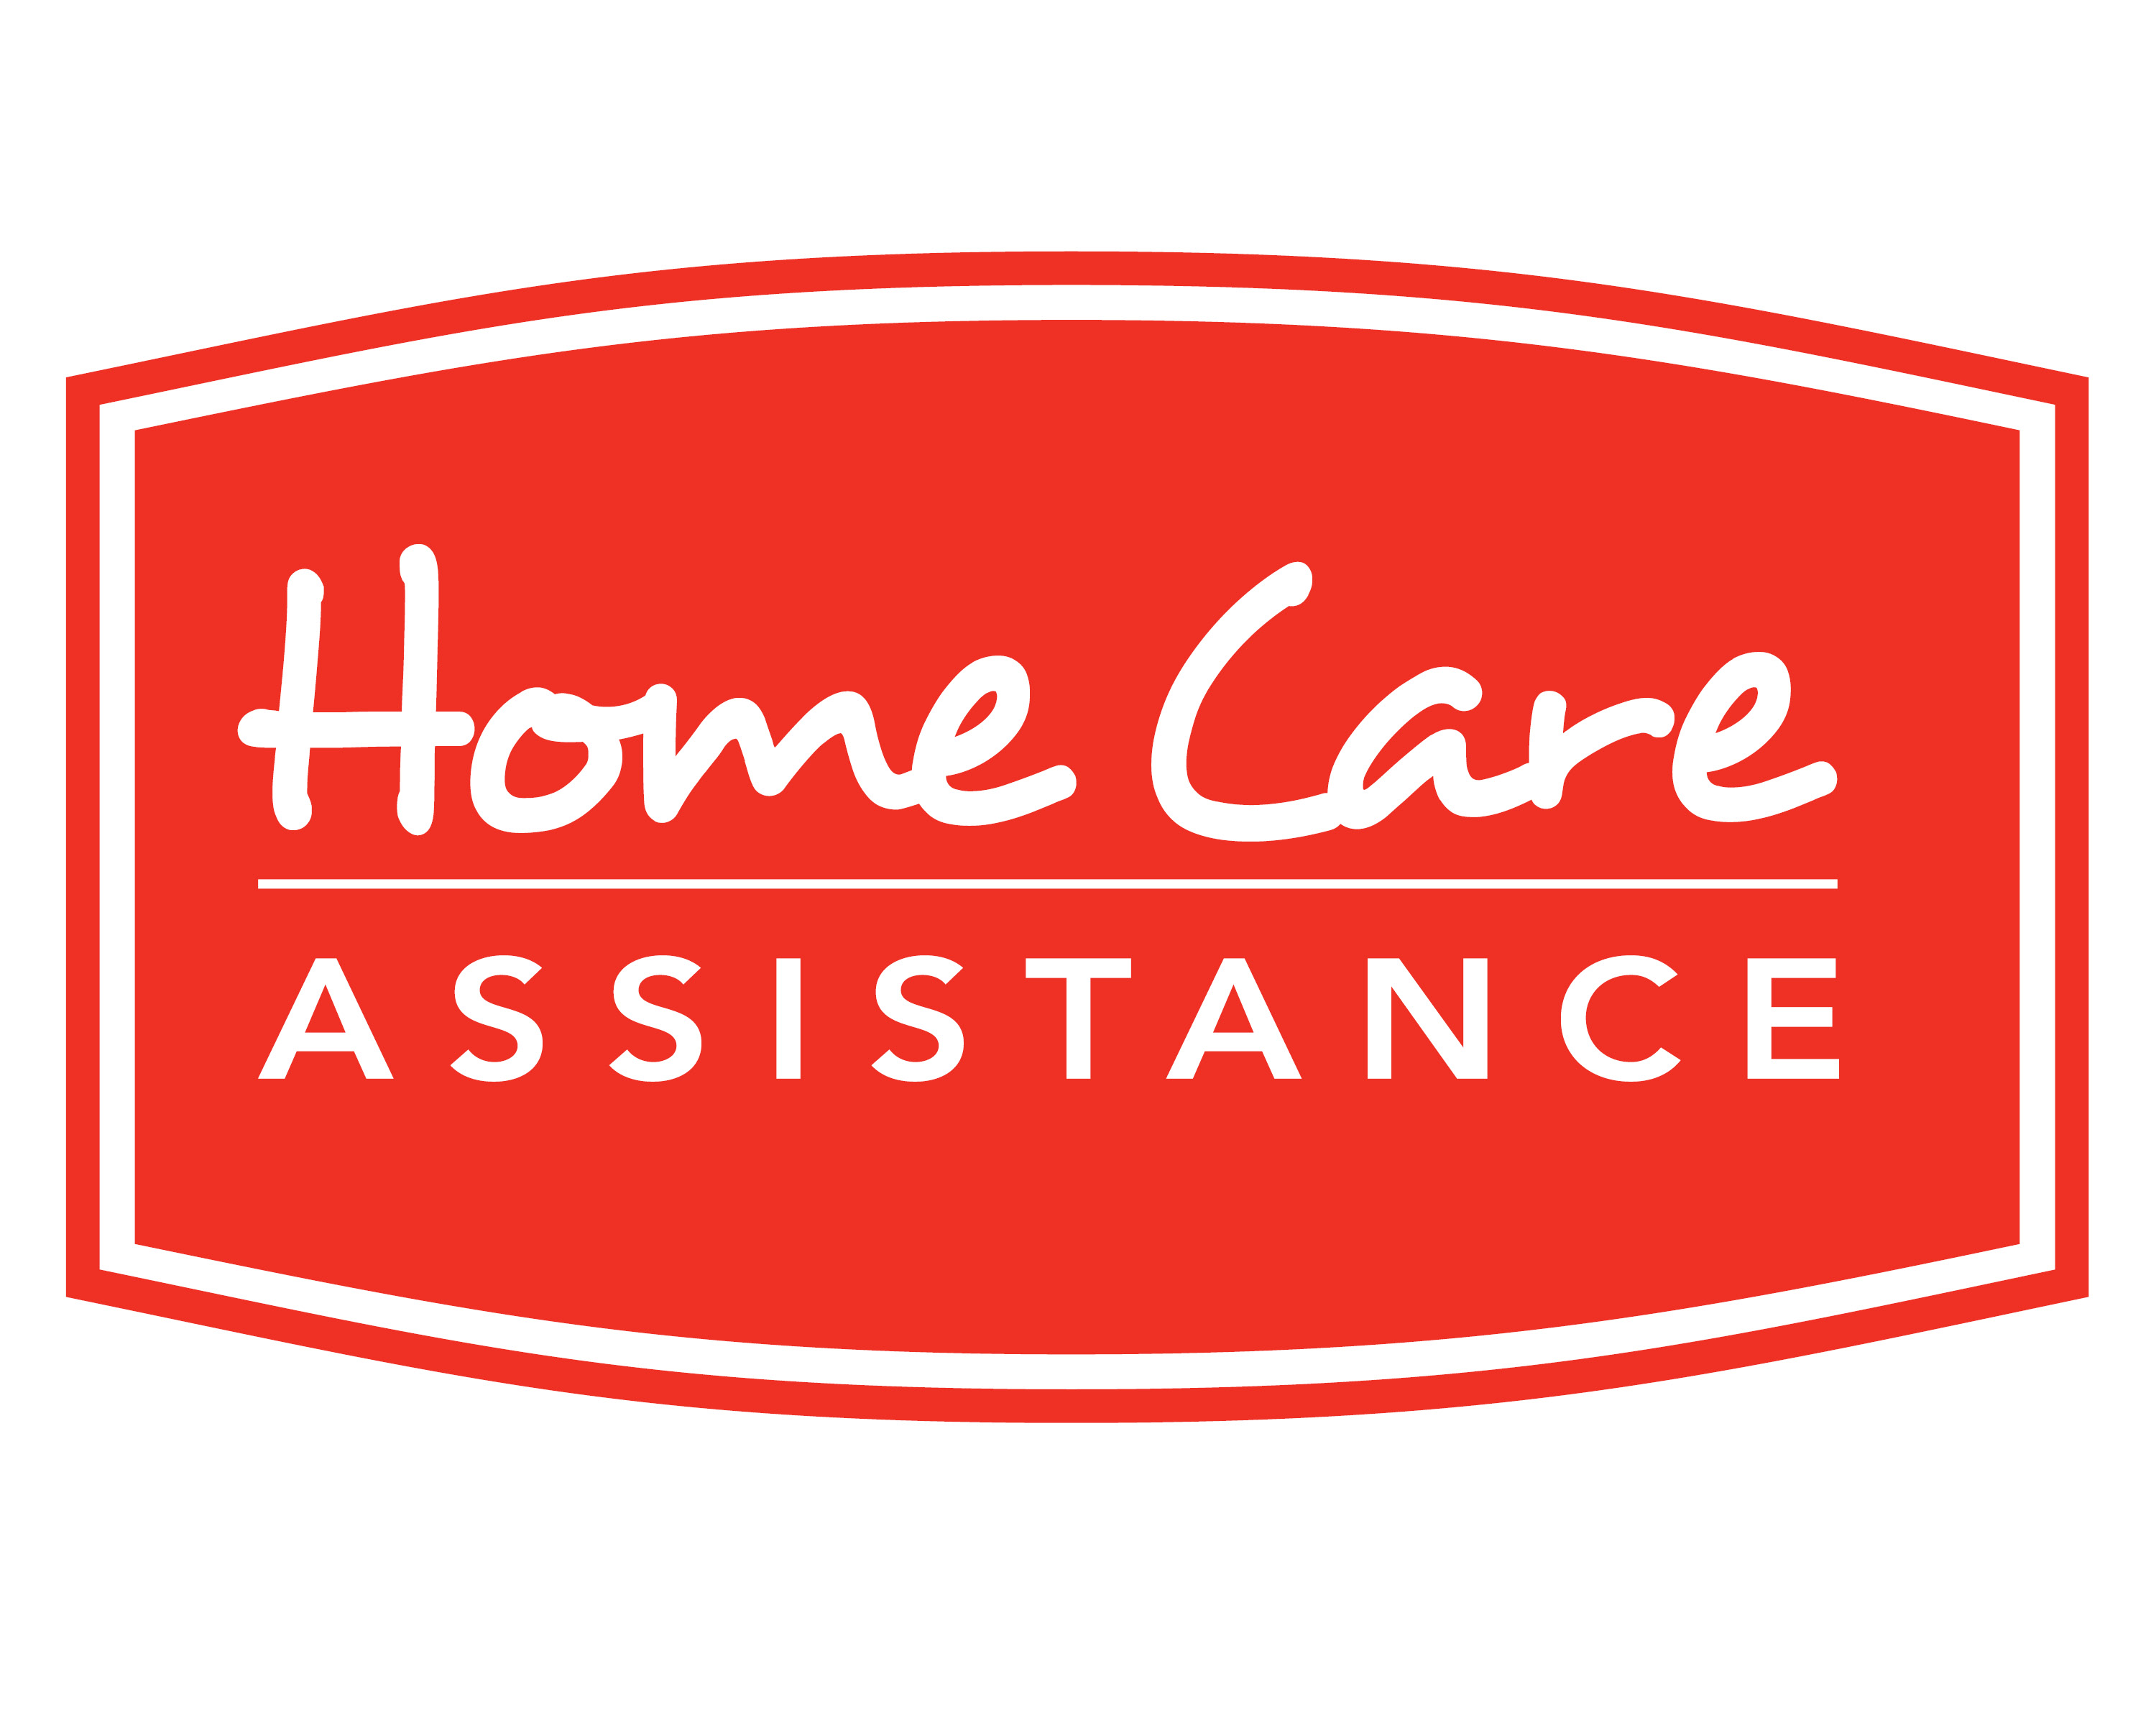 Home Care Assistance.jpg